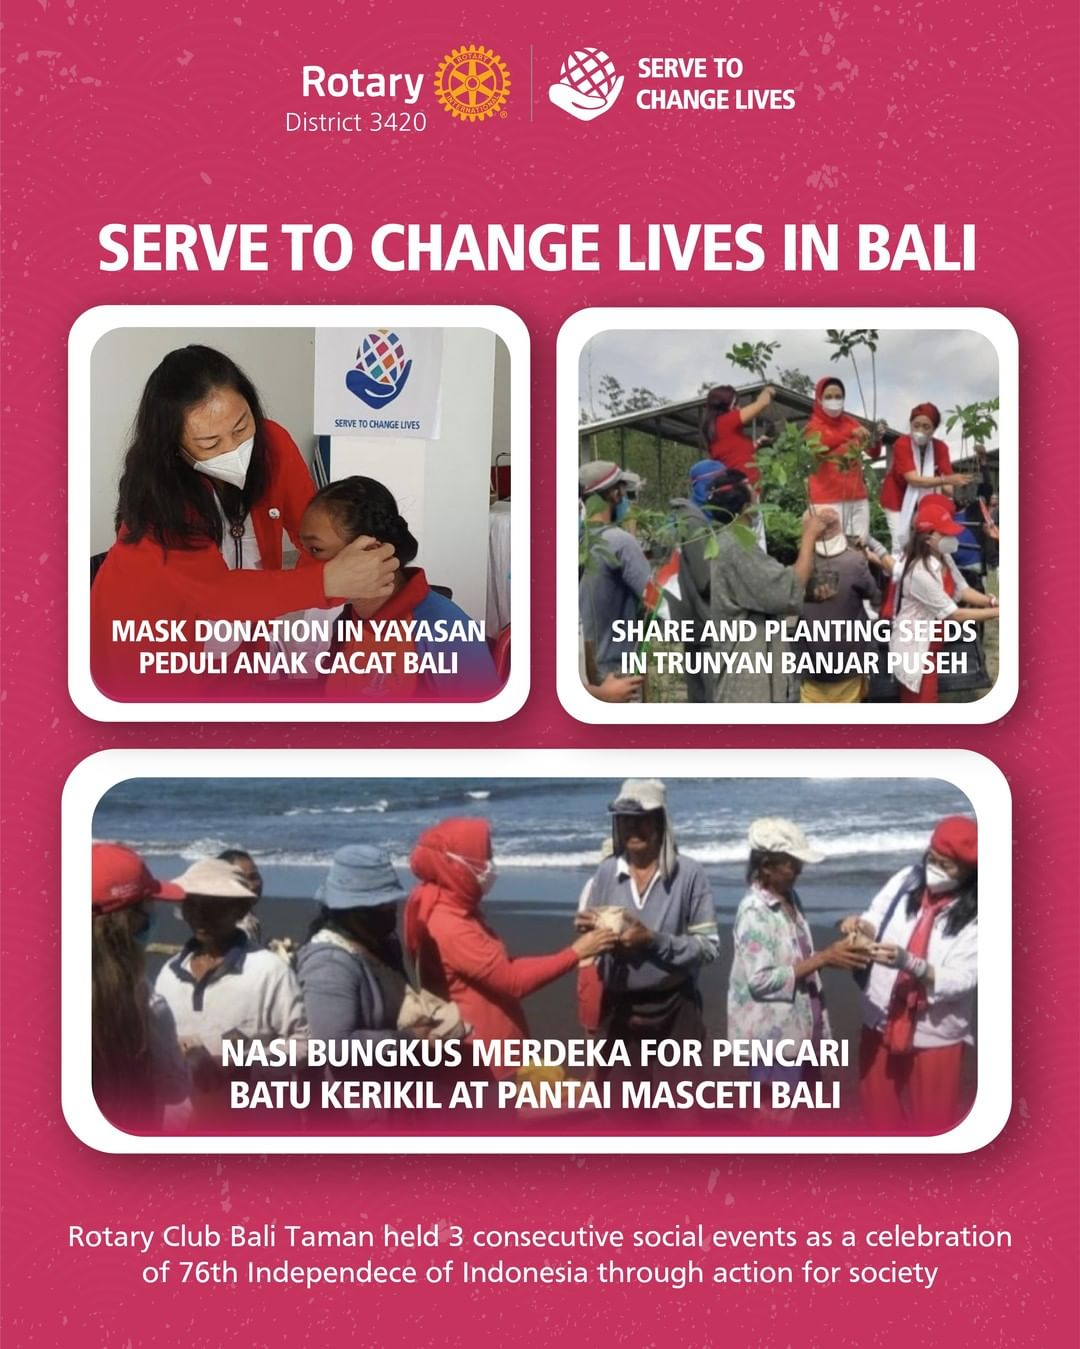 Serve to Change Lives in Bali